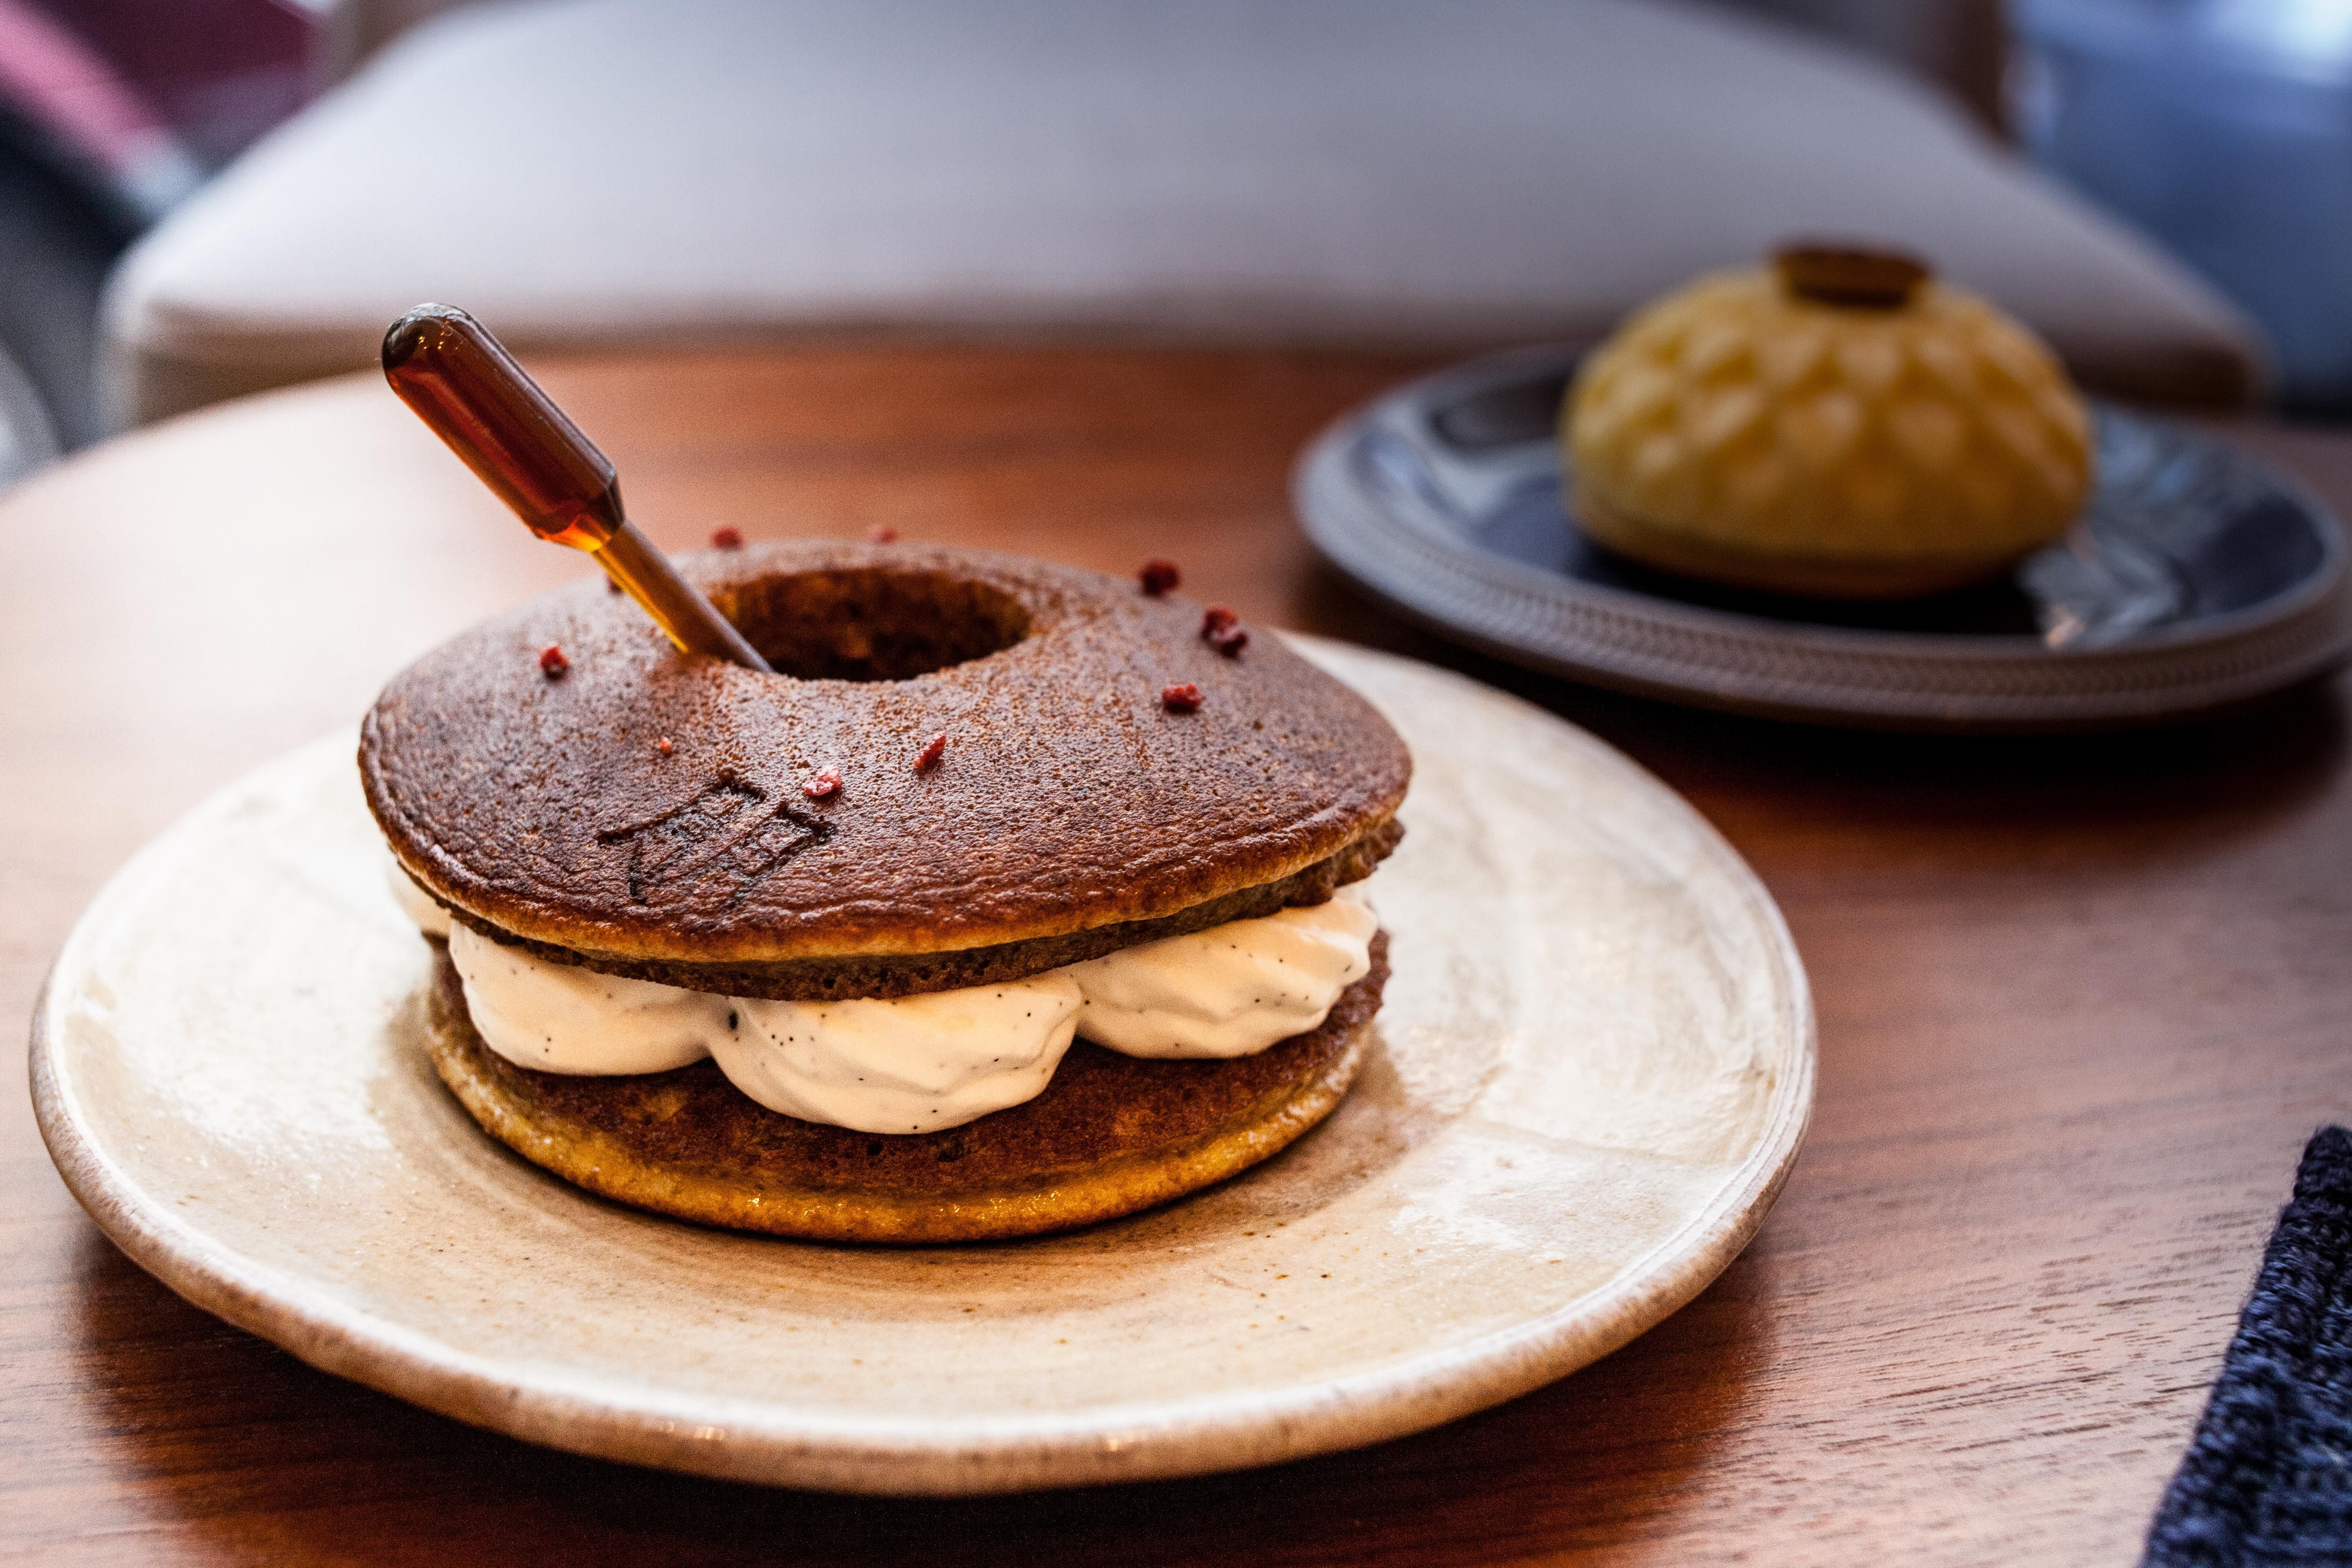 Whisky Baba with dorayaki whipped cream and smoked salt in